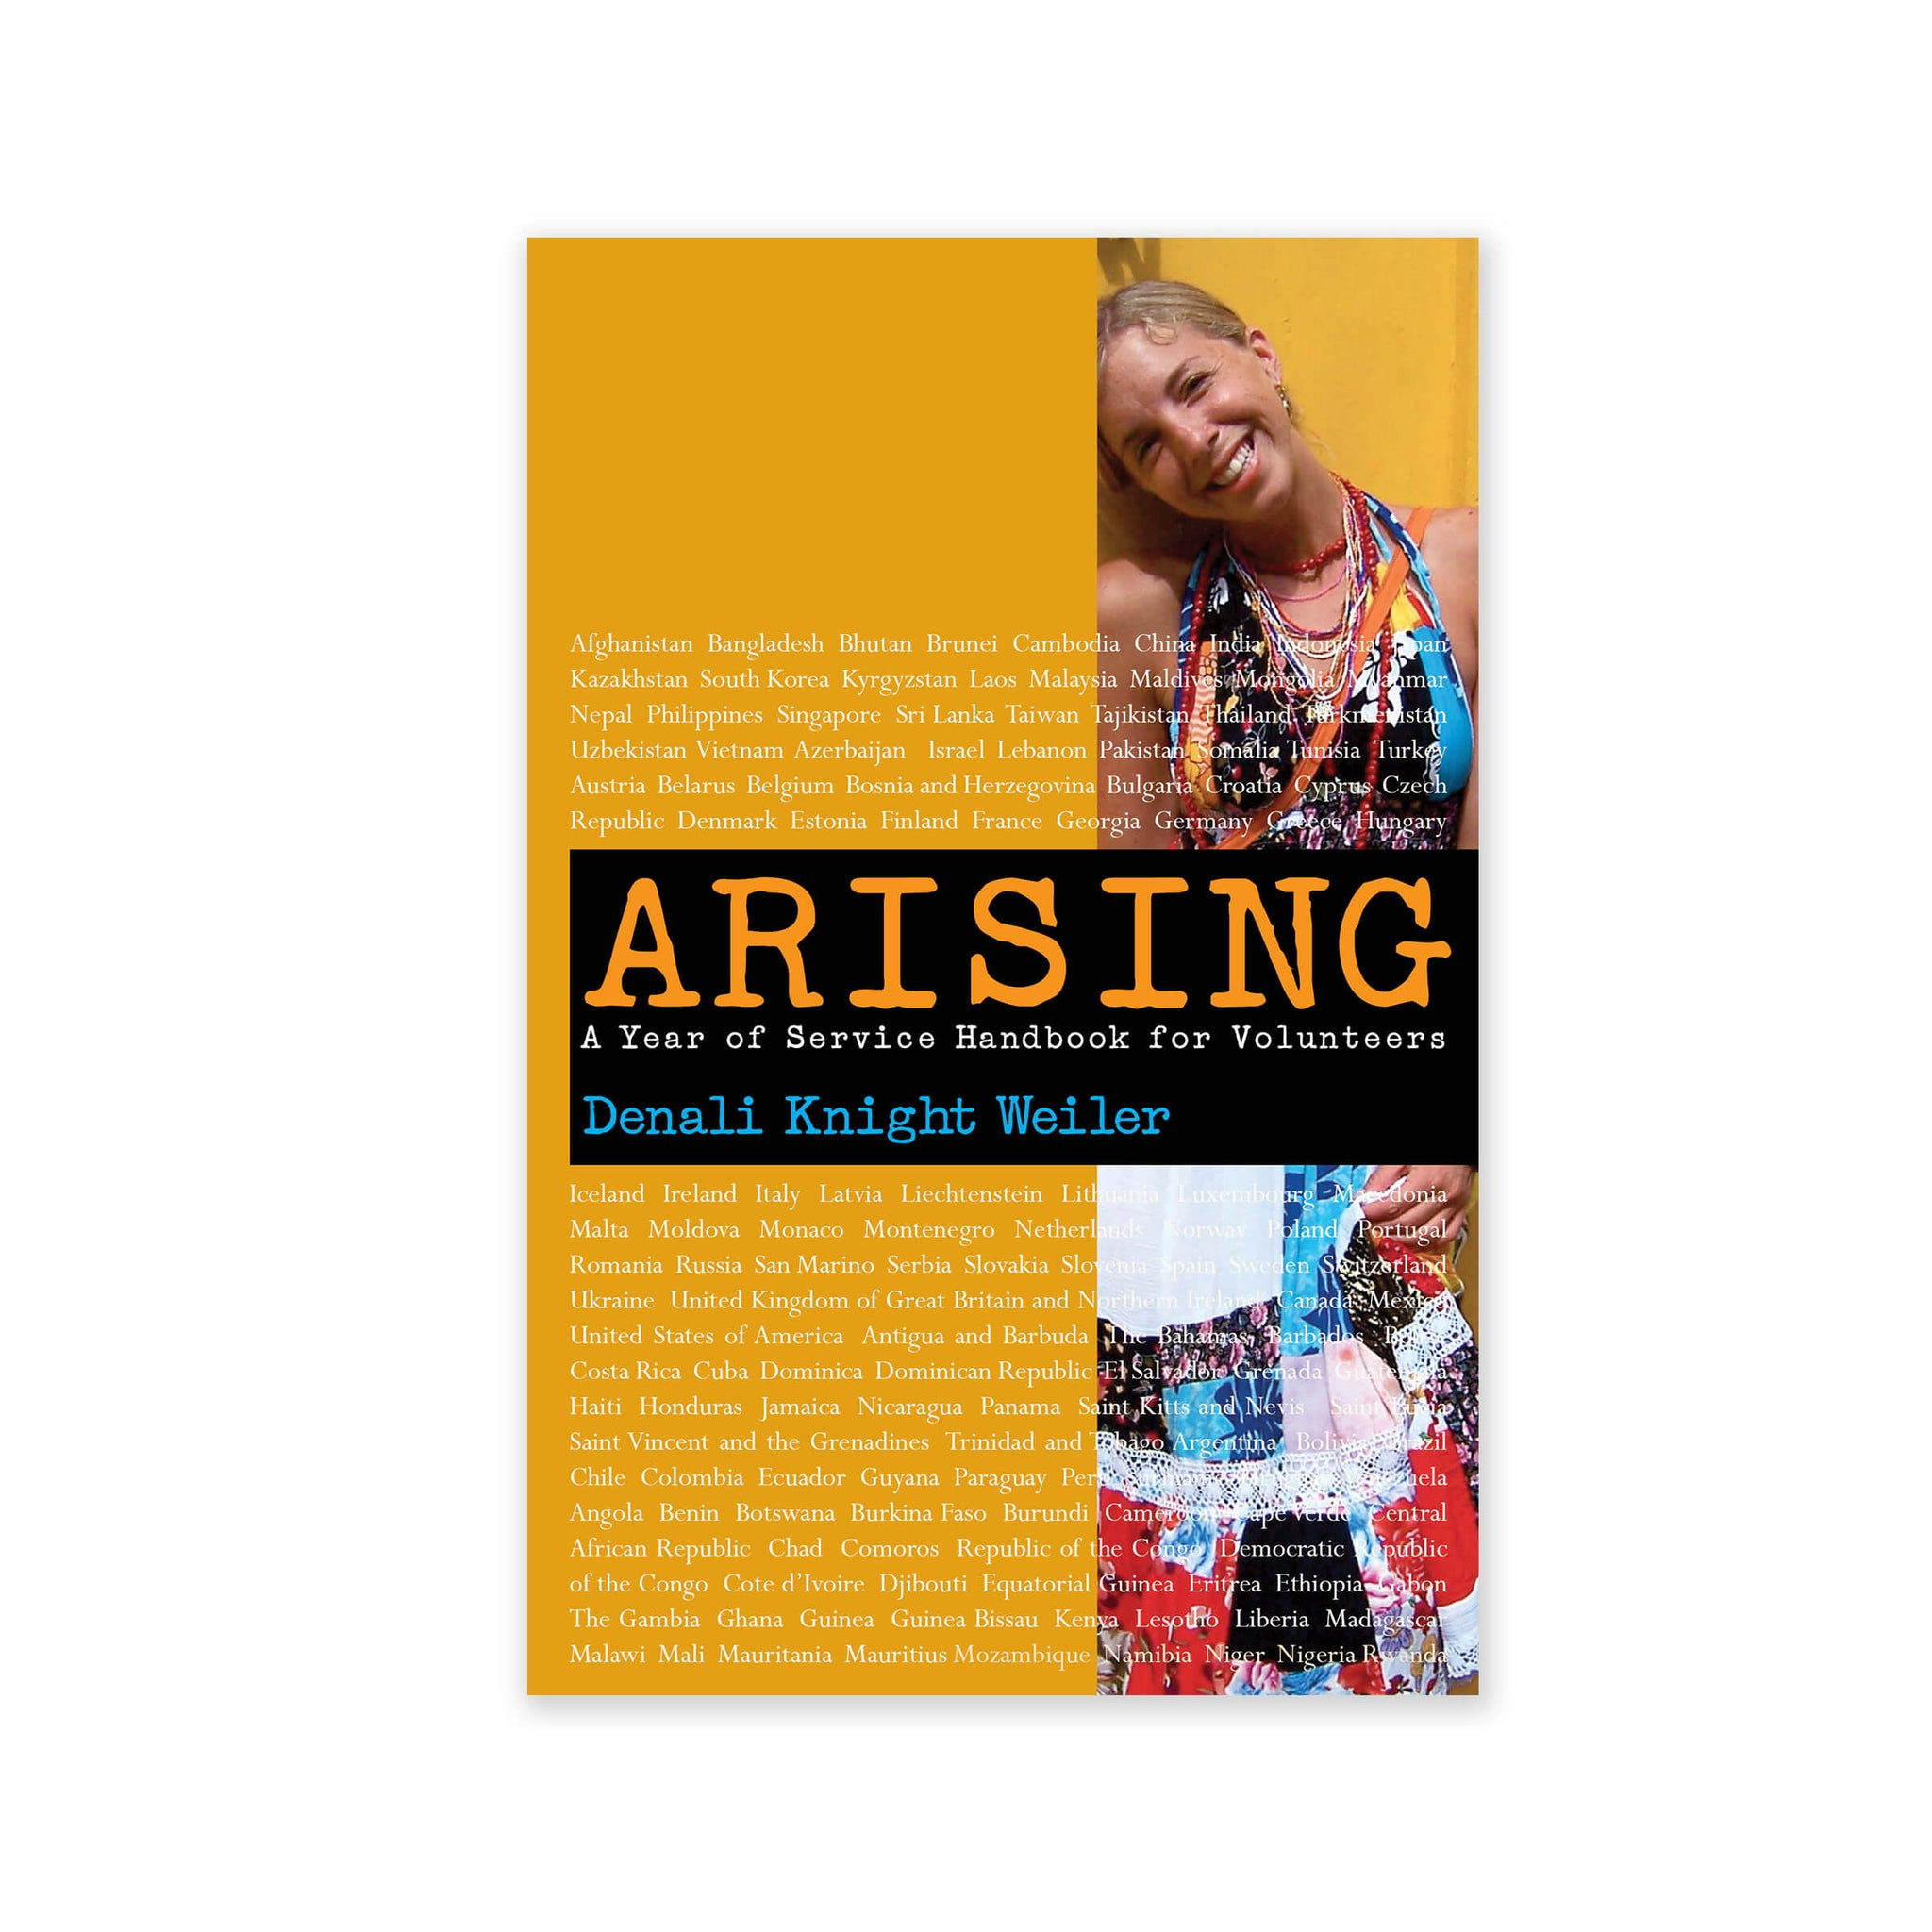 Arising - A Year of Service Handbook for Volunteers